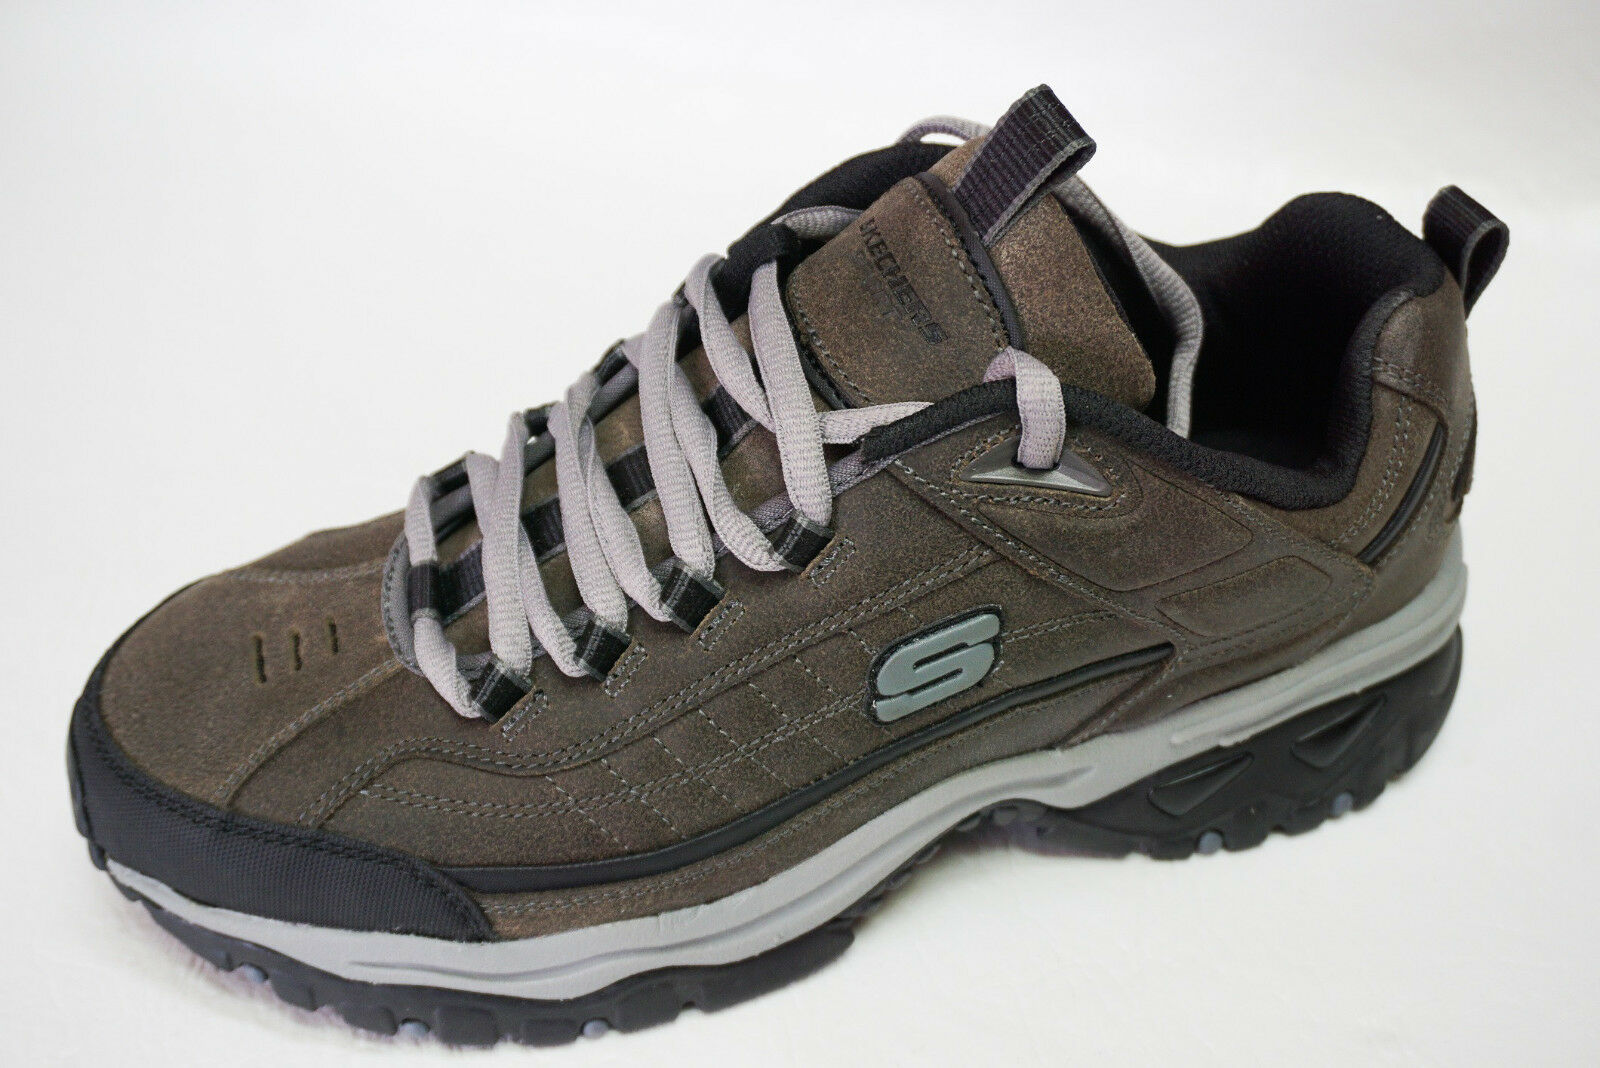 Skechers Sport mens energy DOWNFORCE hiking leather sneakers shoes 10 11.5 NEW